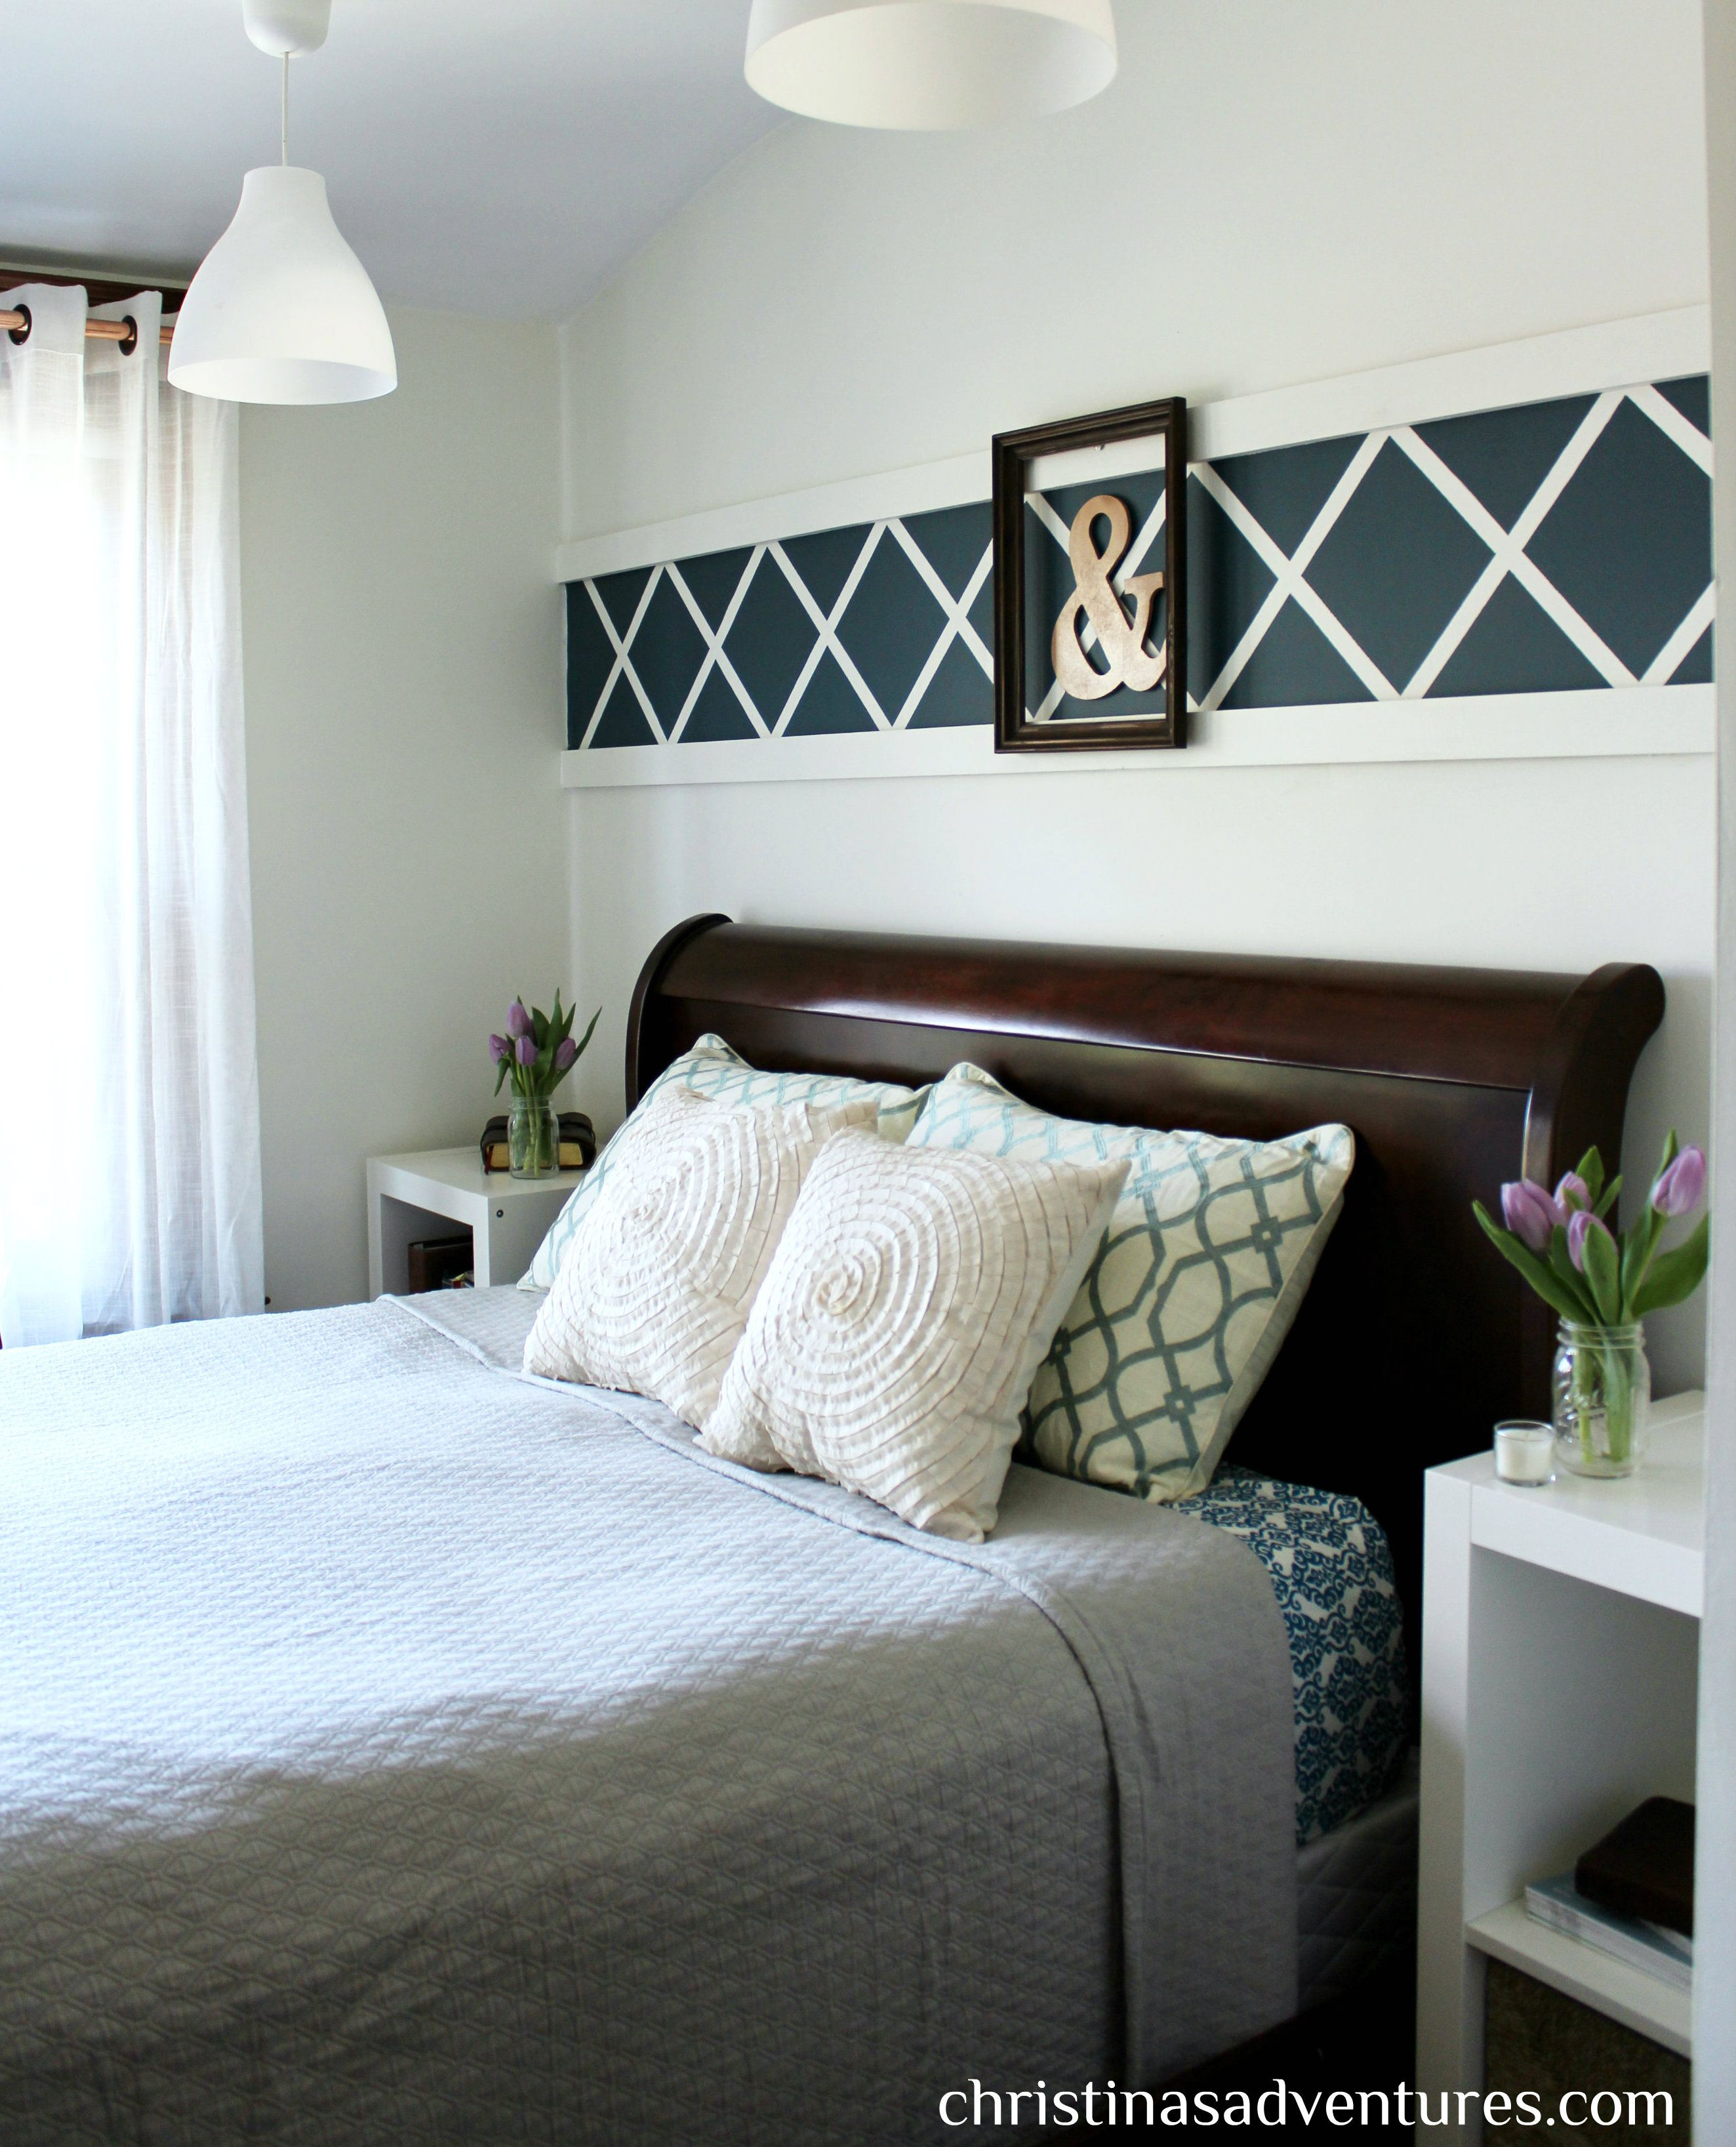 Our Master Bedroom Above the Bed Decor Painters tape